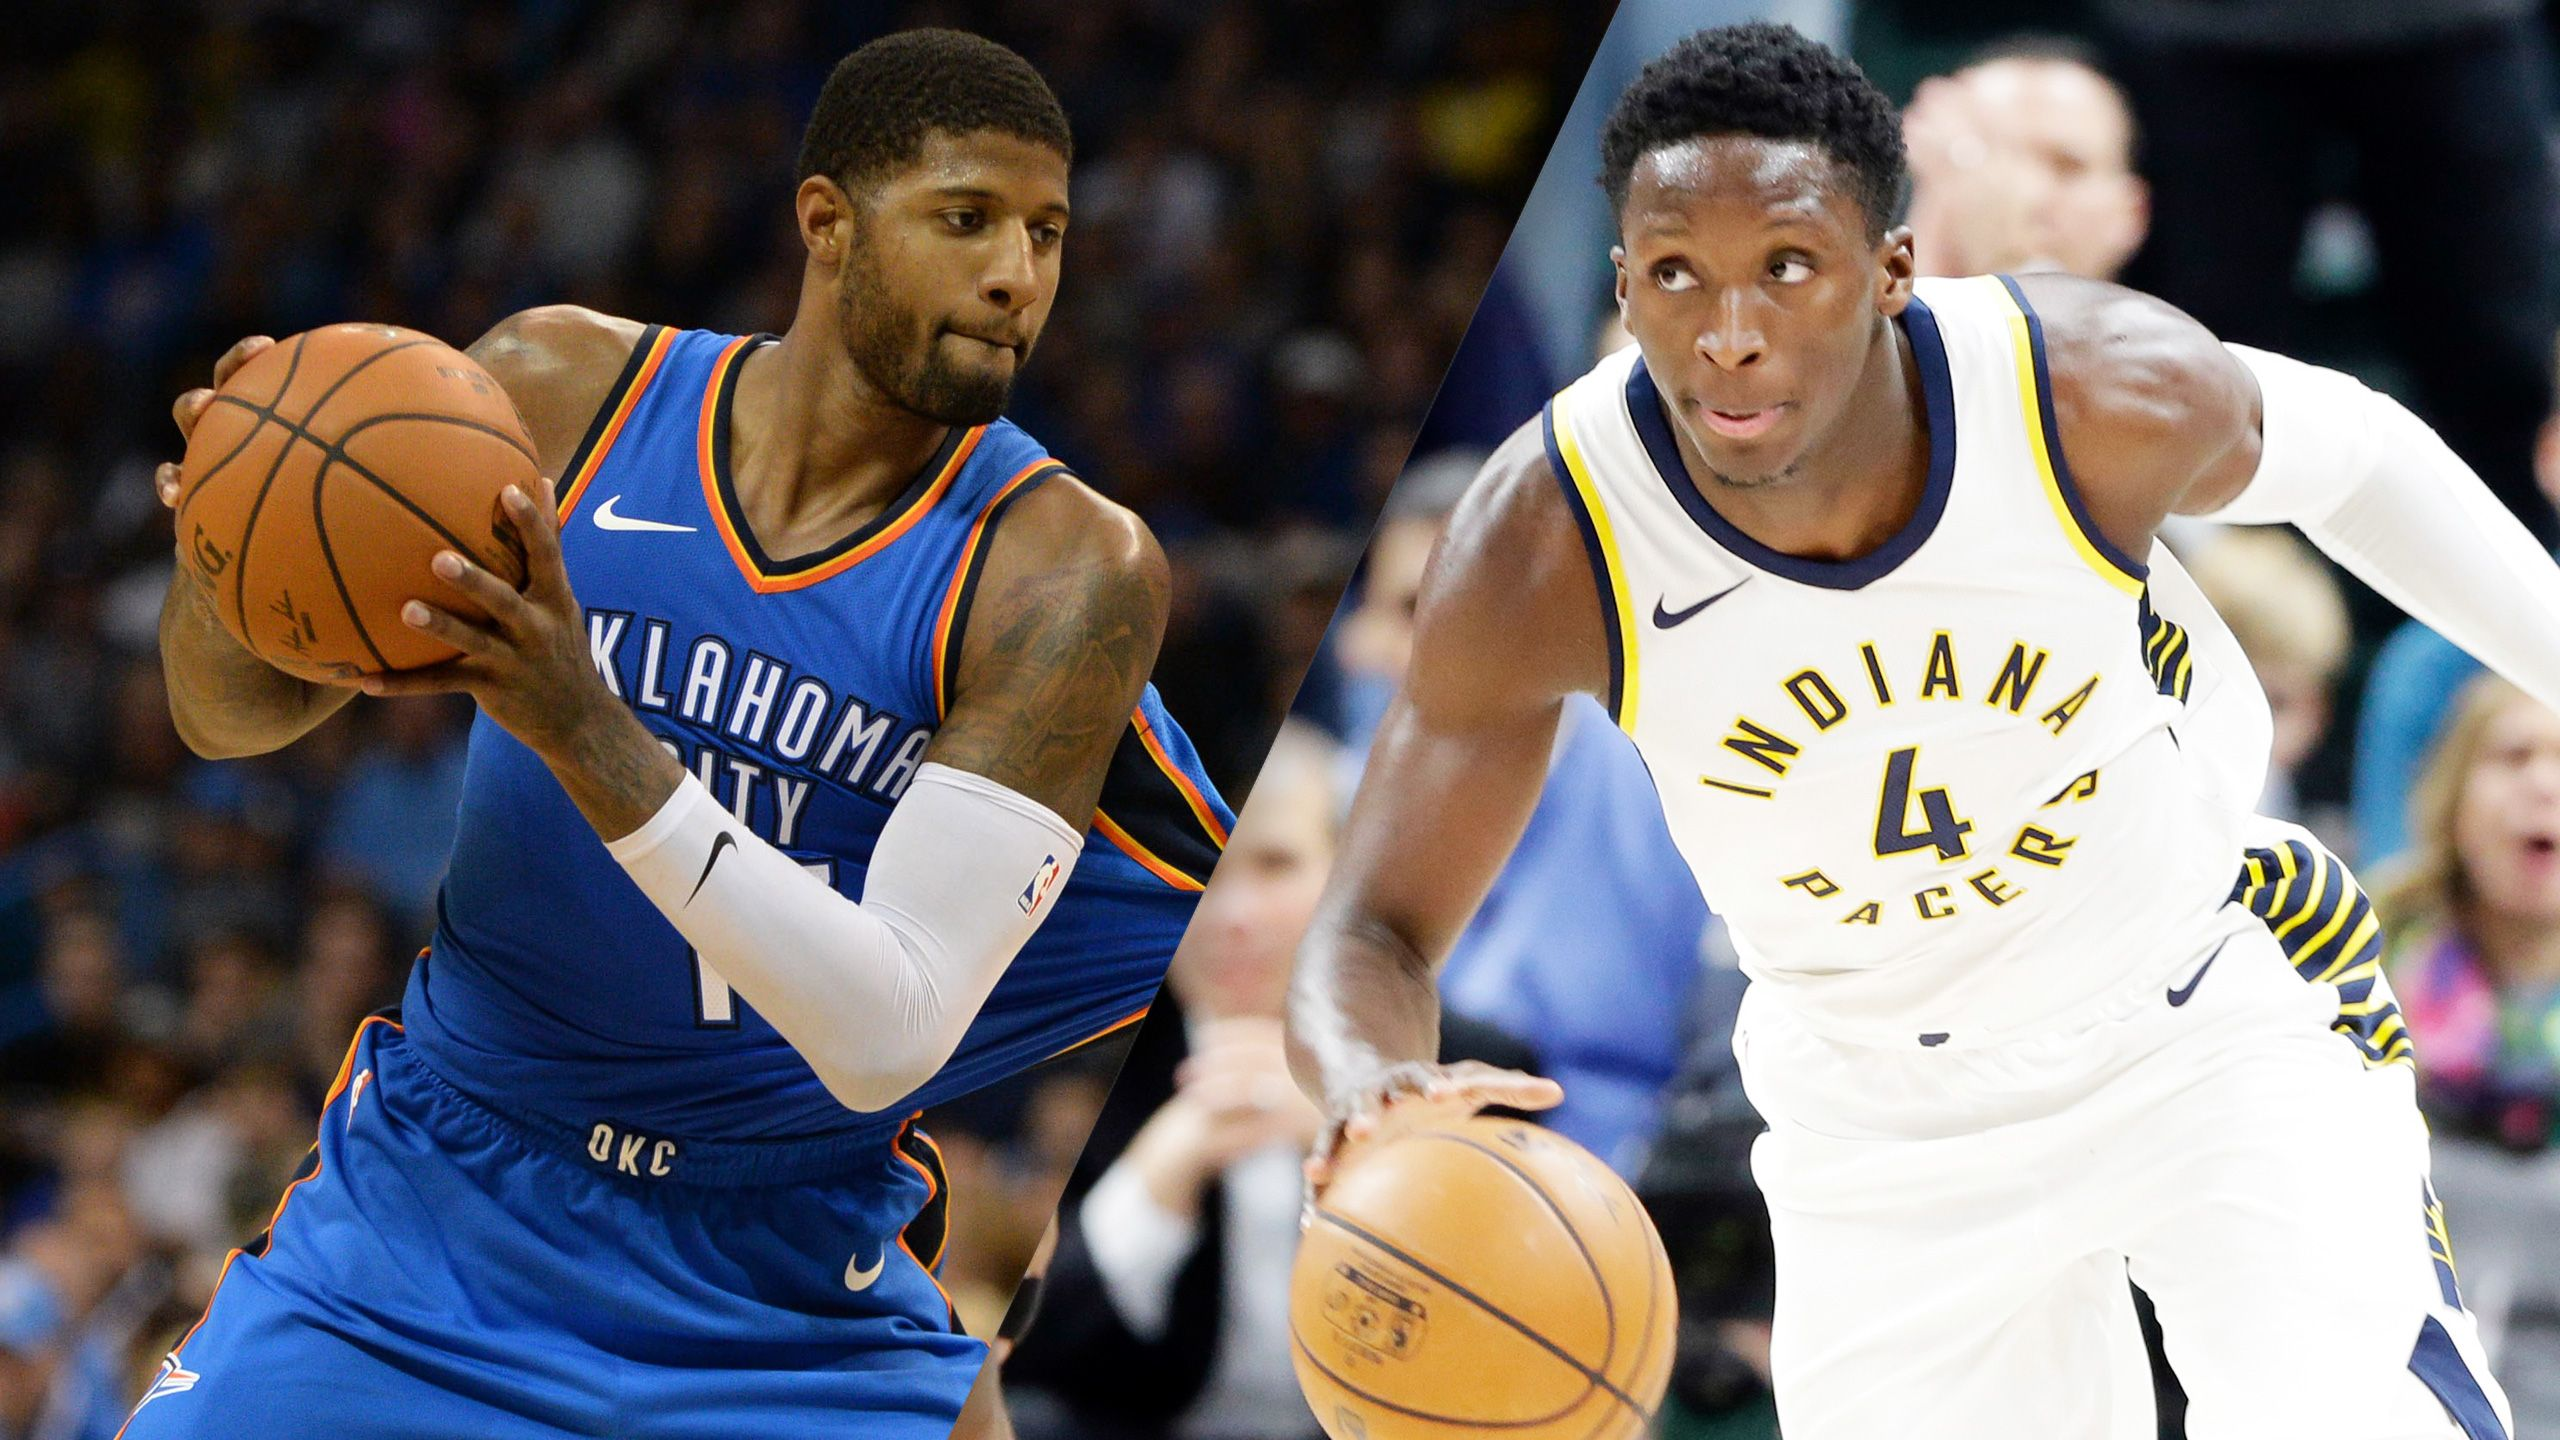 Oklahoma City Thunder vs. Indiana Pacers (re-air)